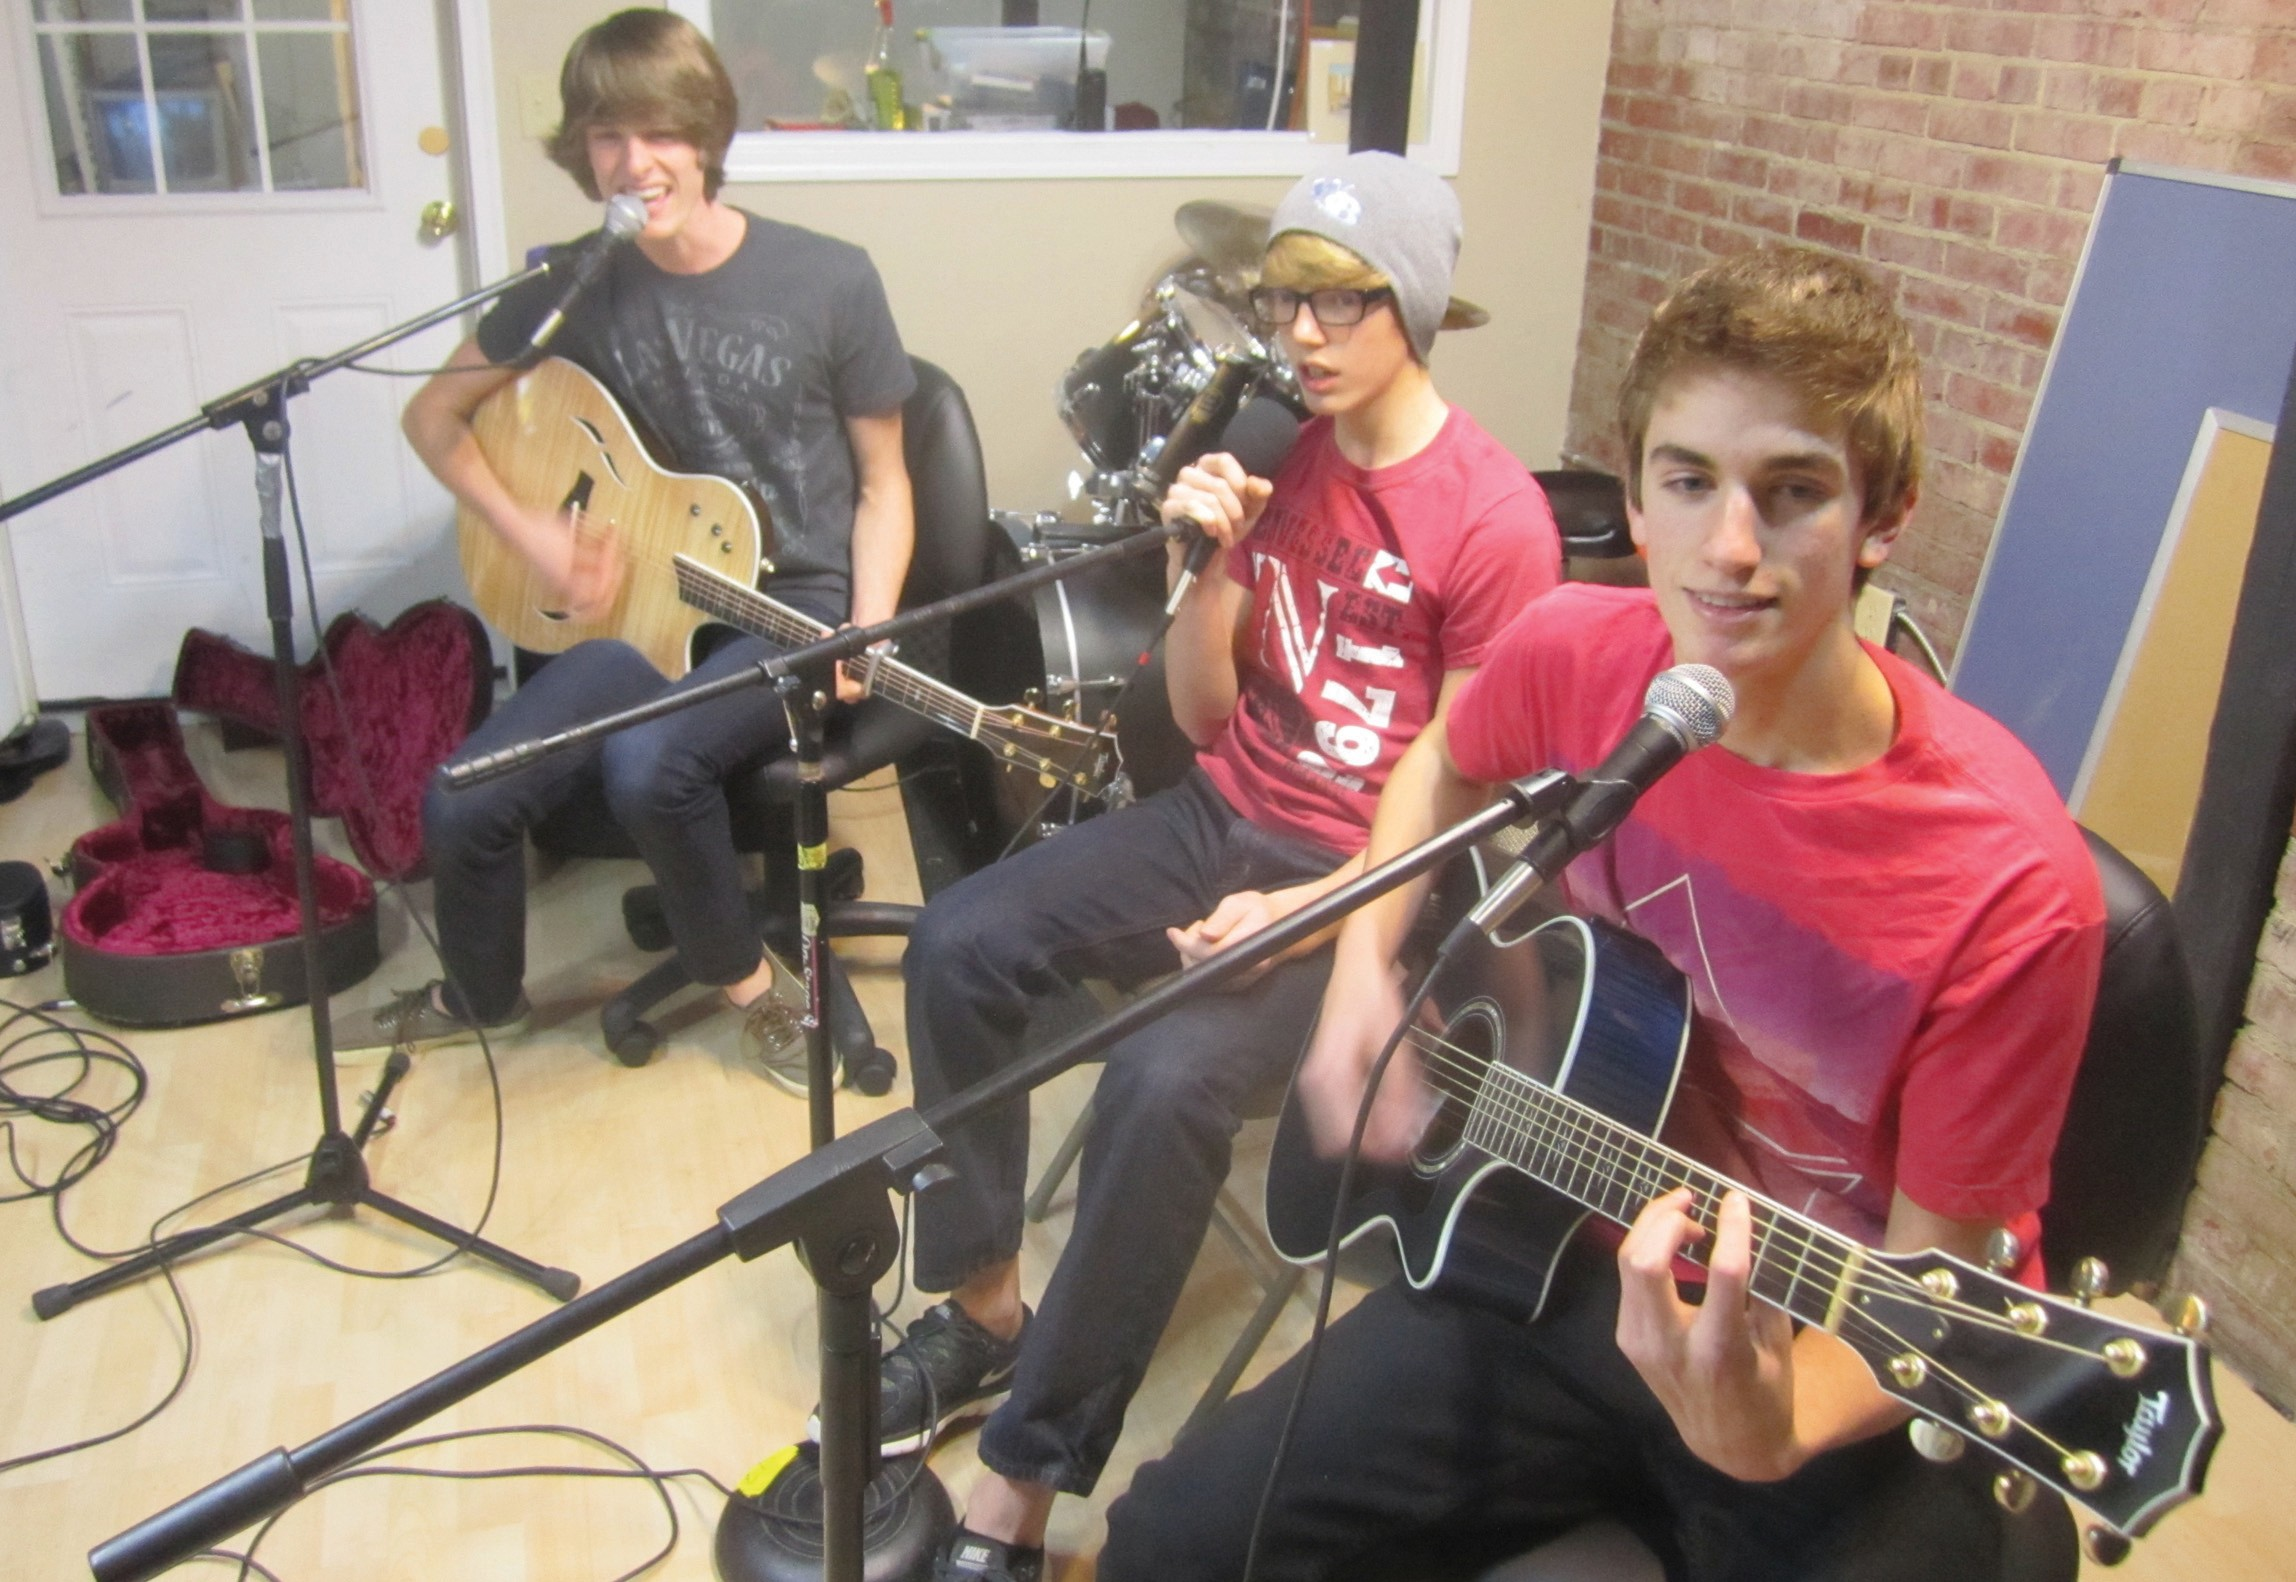 The Beason boys, from the left, Elisha 18, Christopher, 14, and Zachary, 15, rehearse in the family sound studio at Neely Arts Center in Oneonta just before a gig last week at Charlie B's. The bigger news though is that they will be on the 'Talk of Alabama' on Channel 33/40, Dec. 31, at 9 a.m. The program's entry theme music that day will be an original song 'What Do You See?' by the Beasons. It will also be the exit music, and the feature performance music they will play just before being interviewed live, as well. It's currently being mastered in Nashville and will be available on iTunes, Amazon, and other digital music sources within the week. The boys wrote the song themselves, though a detailed description of who created which parts of the music and who contributed what words would take longer than you've got, and is beyond the writer's capabilities anyway. Suffice it to say it was generally a group effort. On down the road? Keep recording new songs, build a fan base, and see where it all leads, says mother Deborah. You can join the crowd on Twitter, Facebook, or YouTube under 'The Beason Boys.' – Ron Gholson